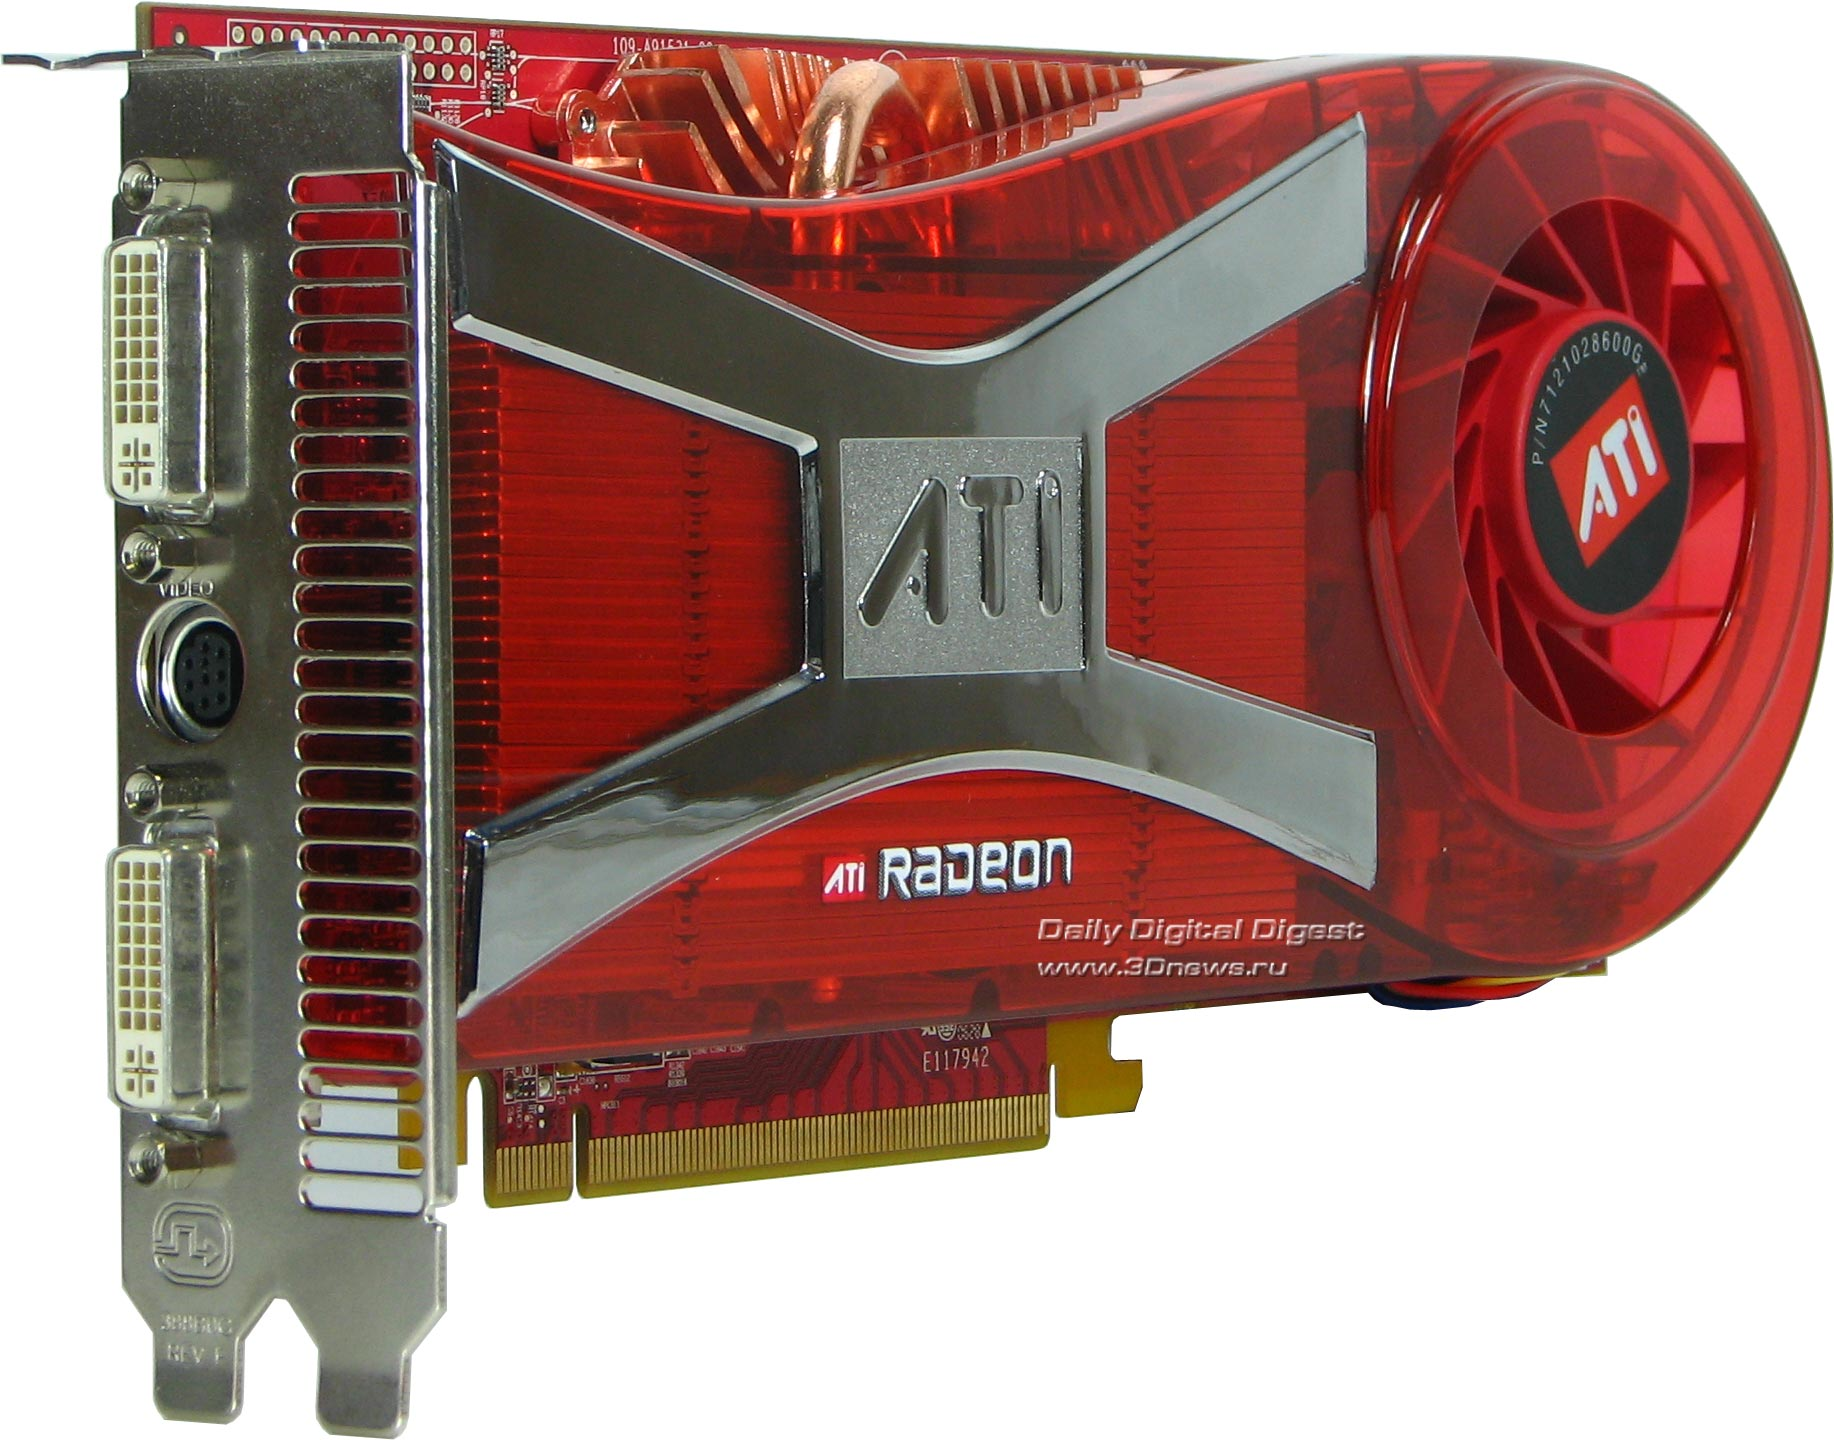 RADEON X1950XTX WINDOWS 7 64 DRIVER